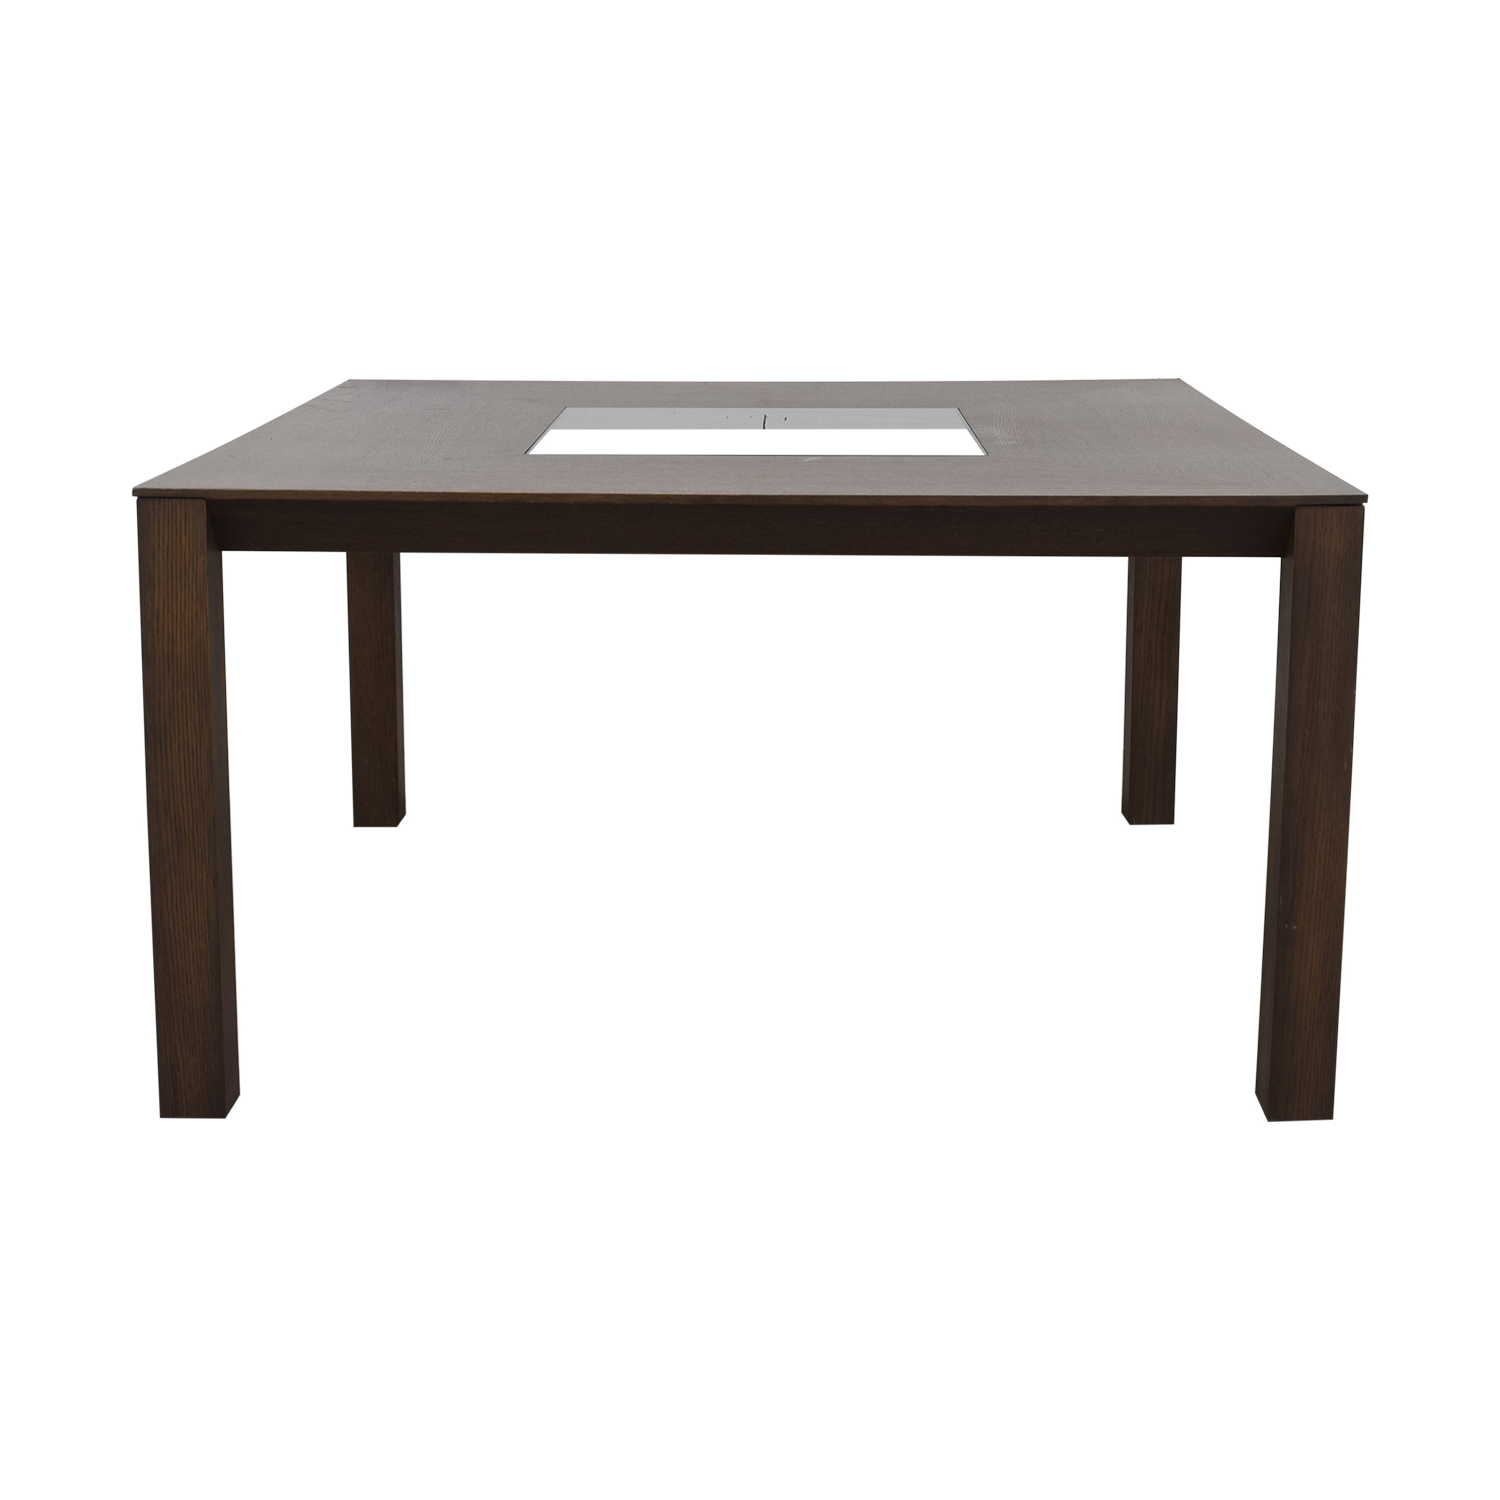 [%54% Off – Pottery Barn Pottery Barn Benchwright Extending With 2019 Benchwright Round Pedestal Dining Tables|Benchwright Round Pedestal Dining Tables Regarding 2019 54% Off – Pottery Barn Pottery Barn Benchwright Extending|Preferred Benchwright Round Pedestal Dining Tables Pertaining To 54% Off – Pottery Barn Pottery Barn Benchwright Extending|Best And Newest 54% Off – Pottery Barn Pottery Barn Benchwright Extending With Regard To Benchwright Round Pedestal Dining Tables%] (View 15 of 25)